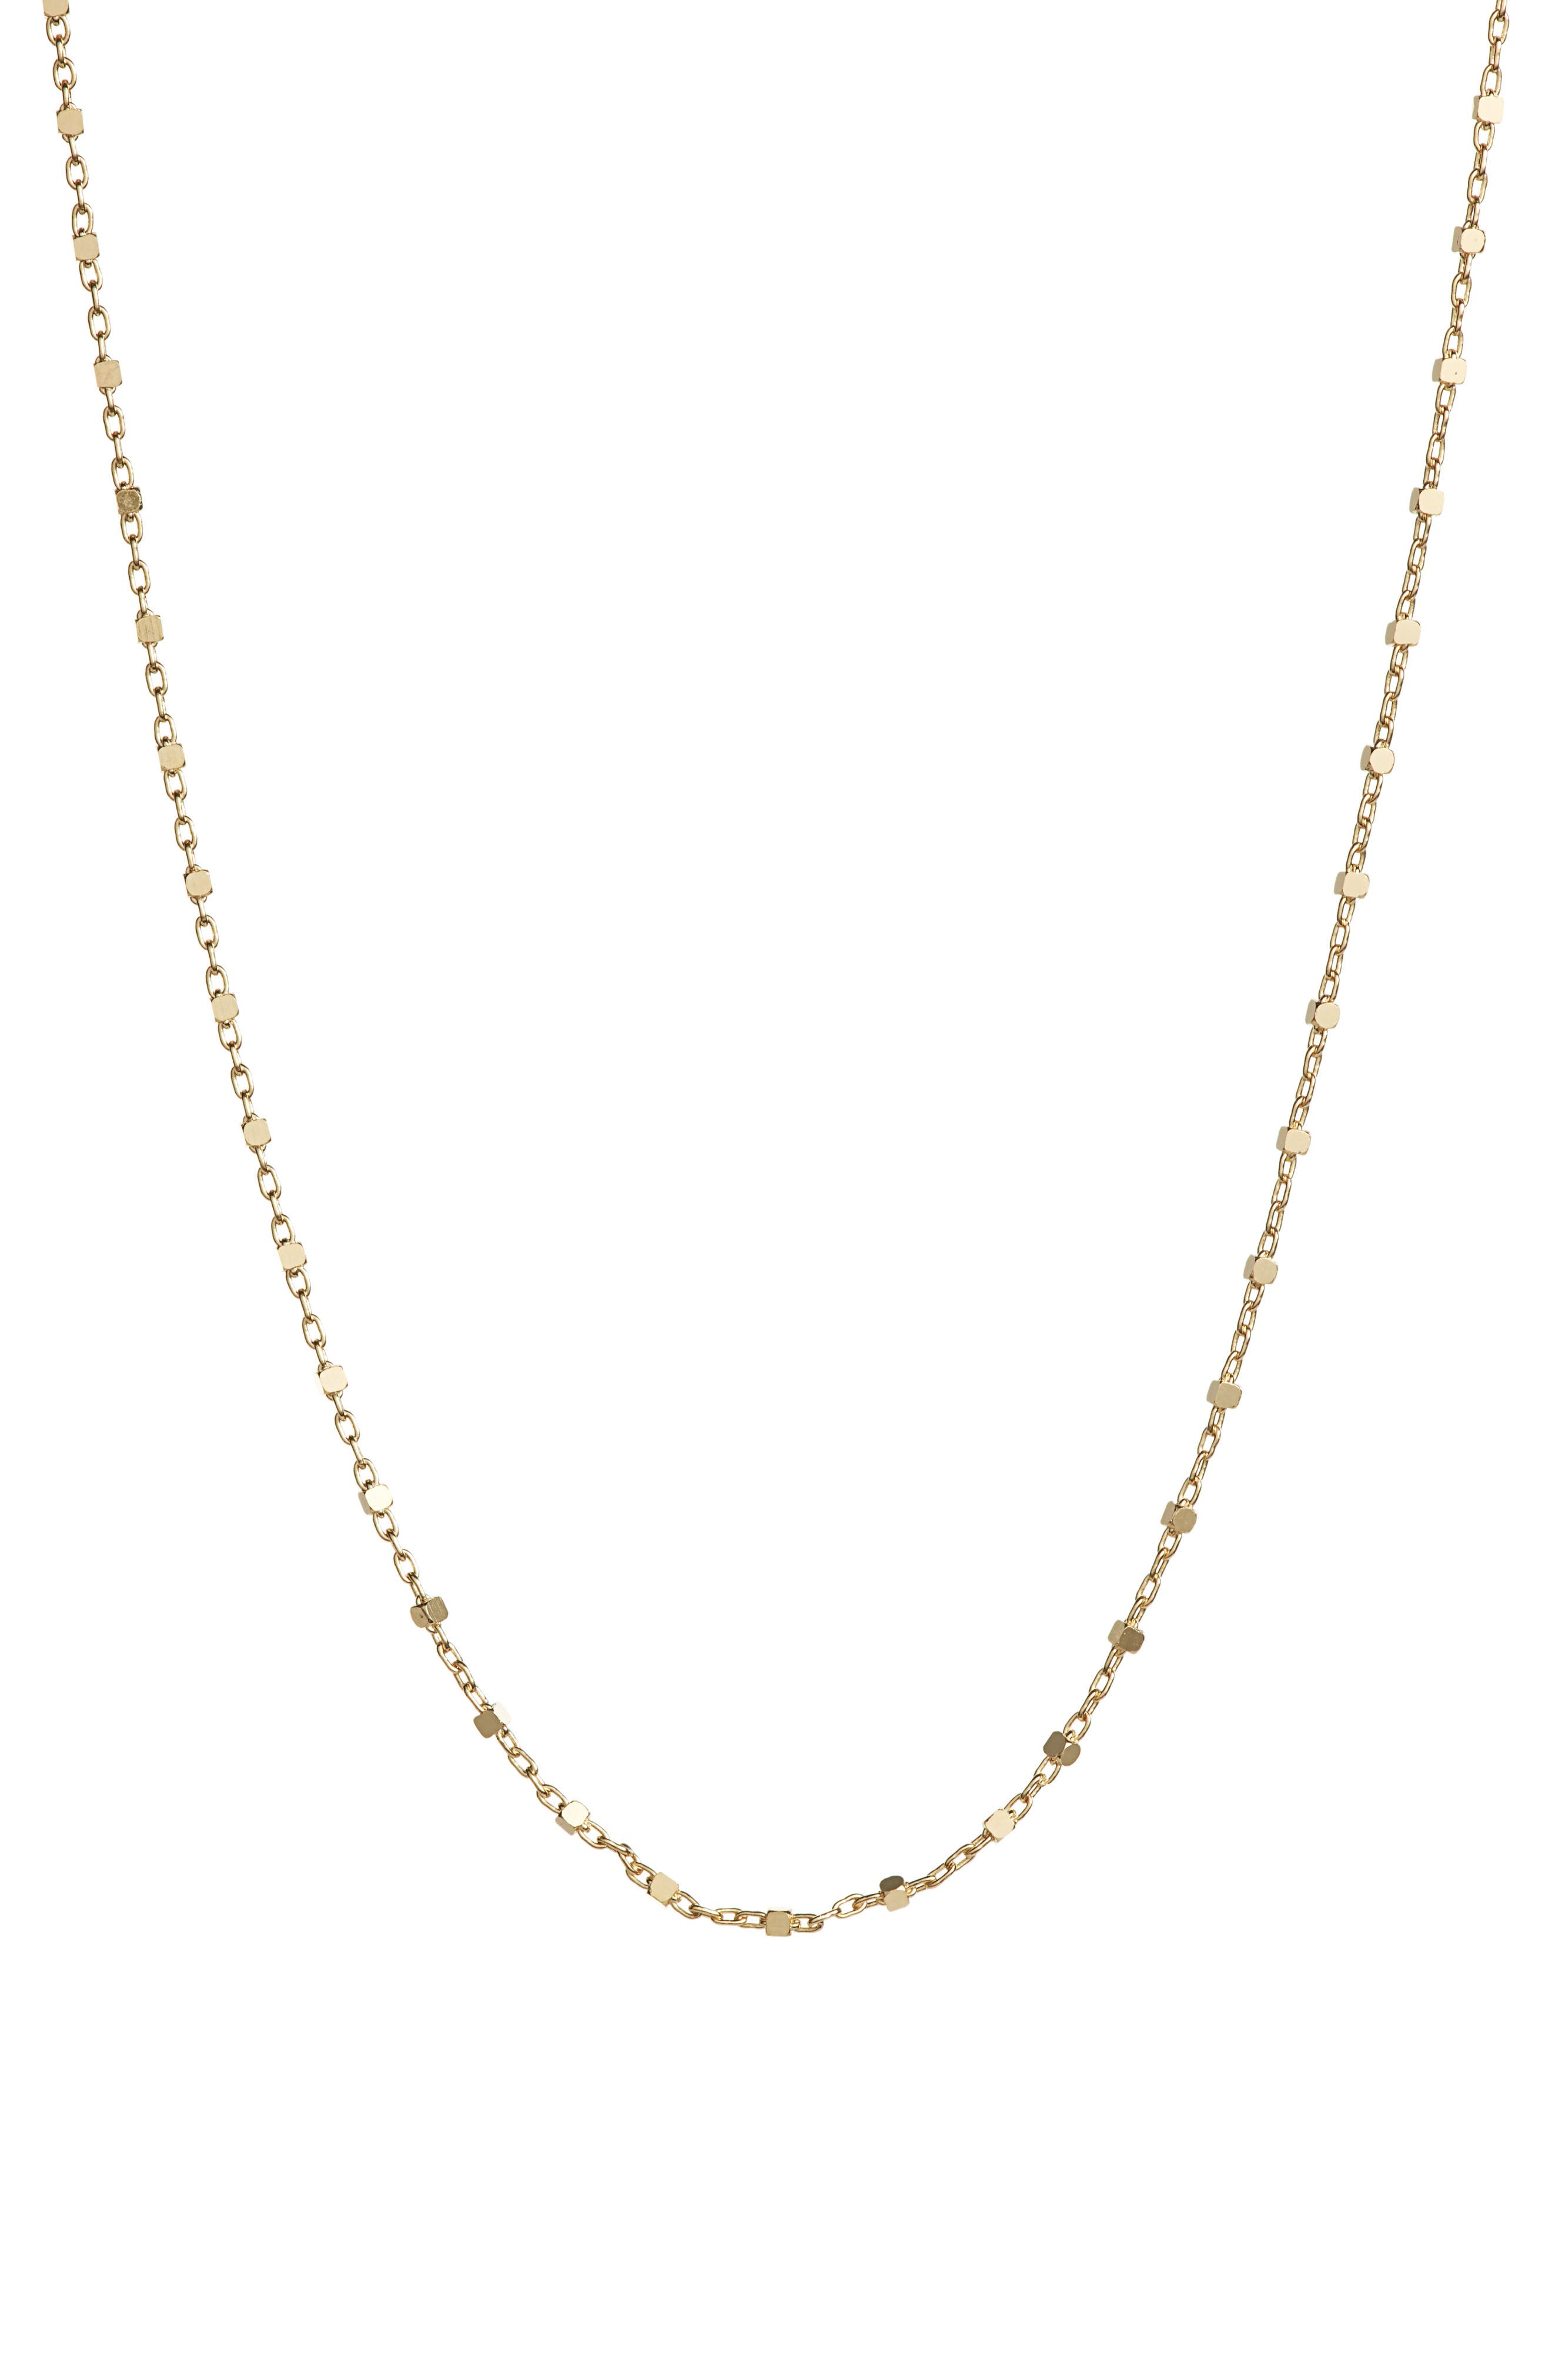 Beaded Chain Necklace,                         Main,                         color, YELLOW GOLD